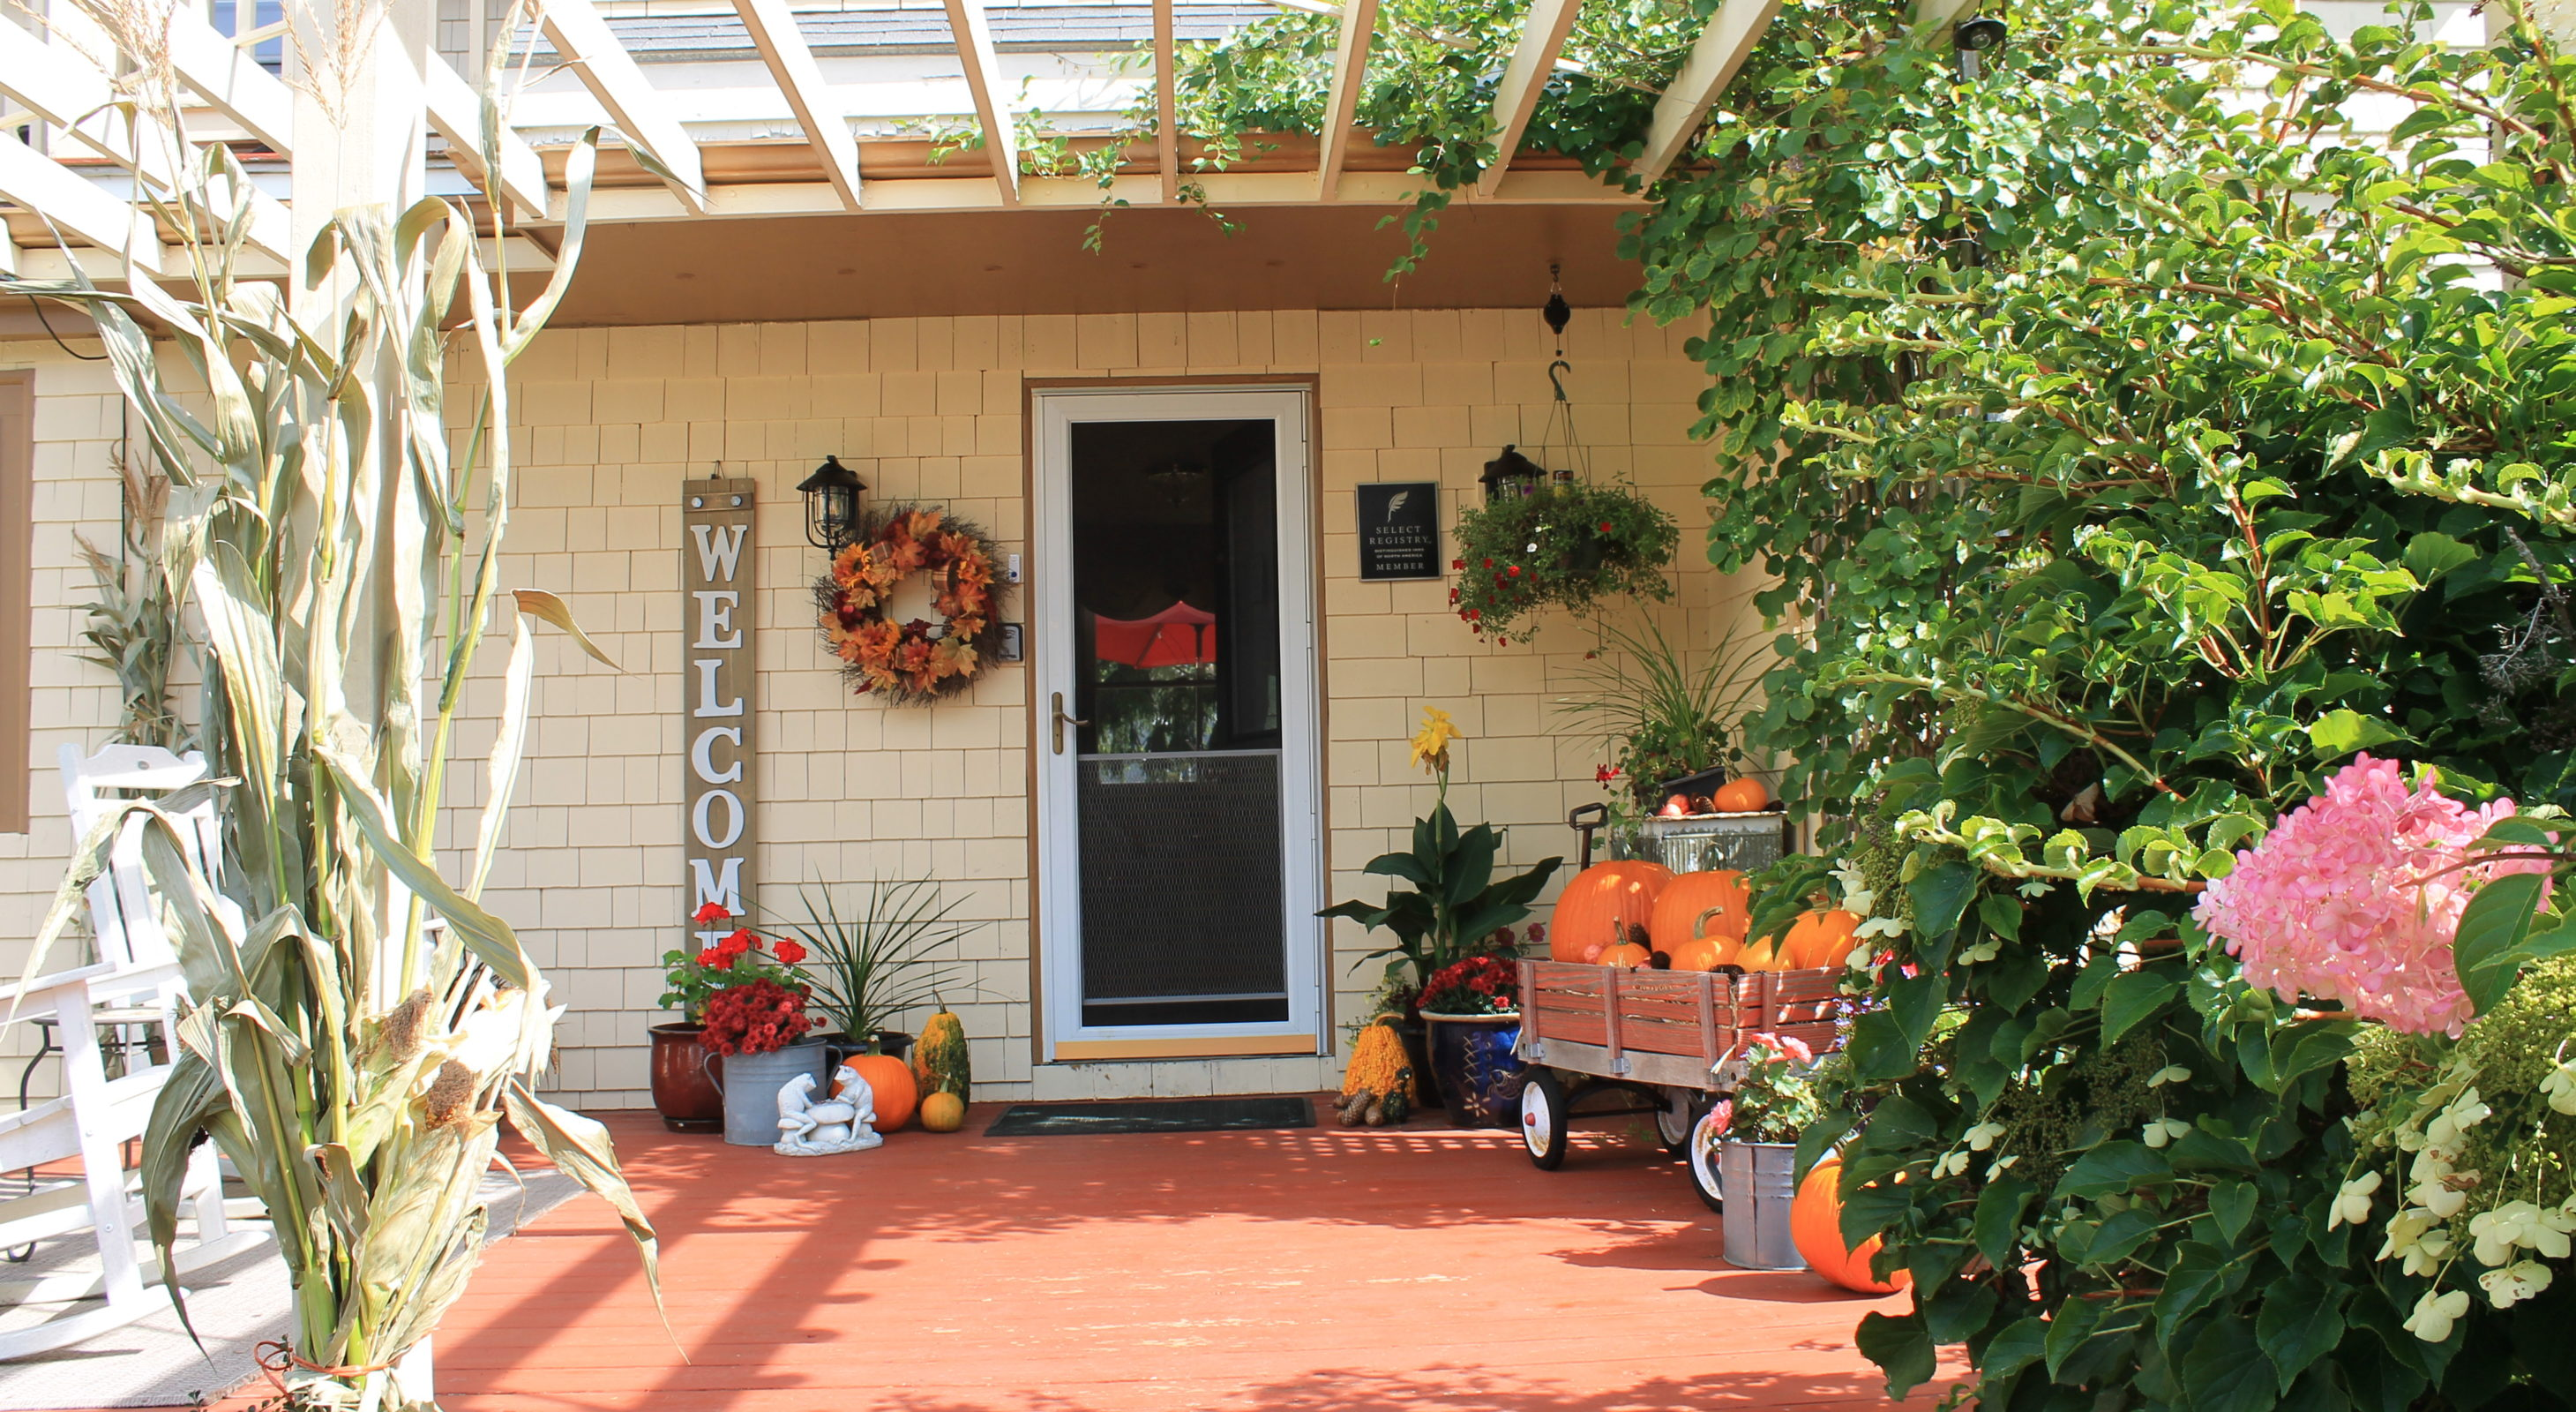 The inn's front deck decorated for fall.